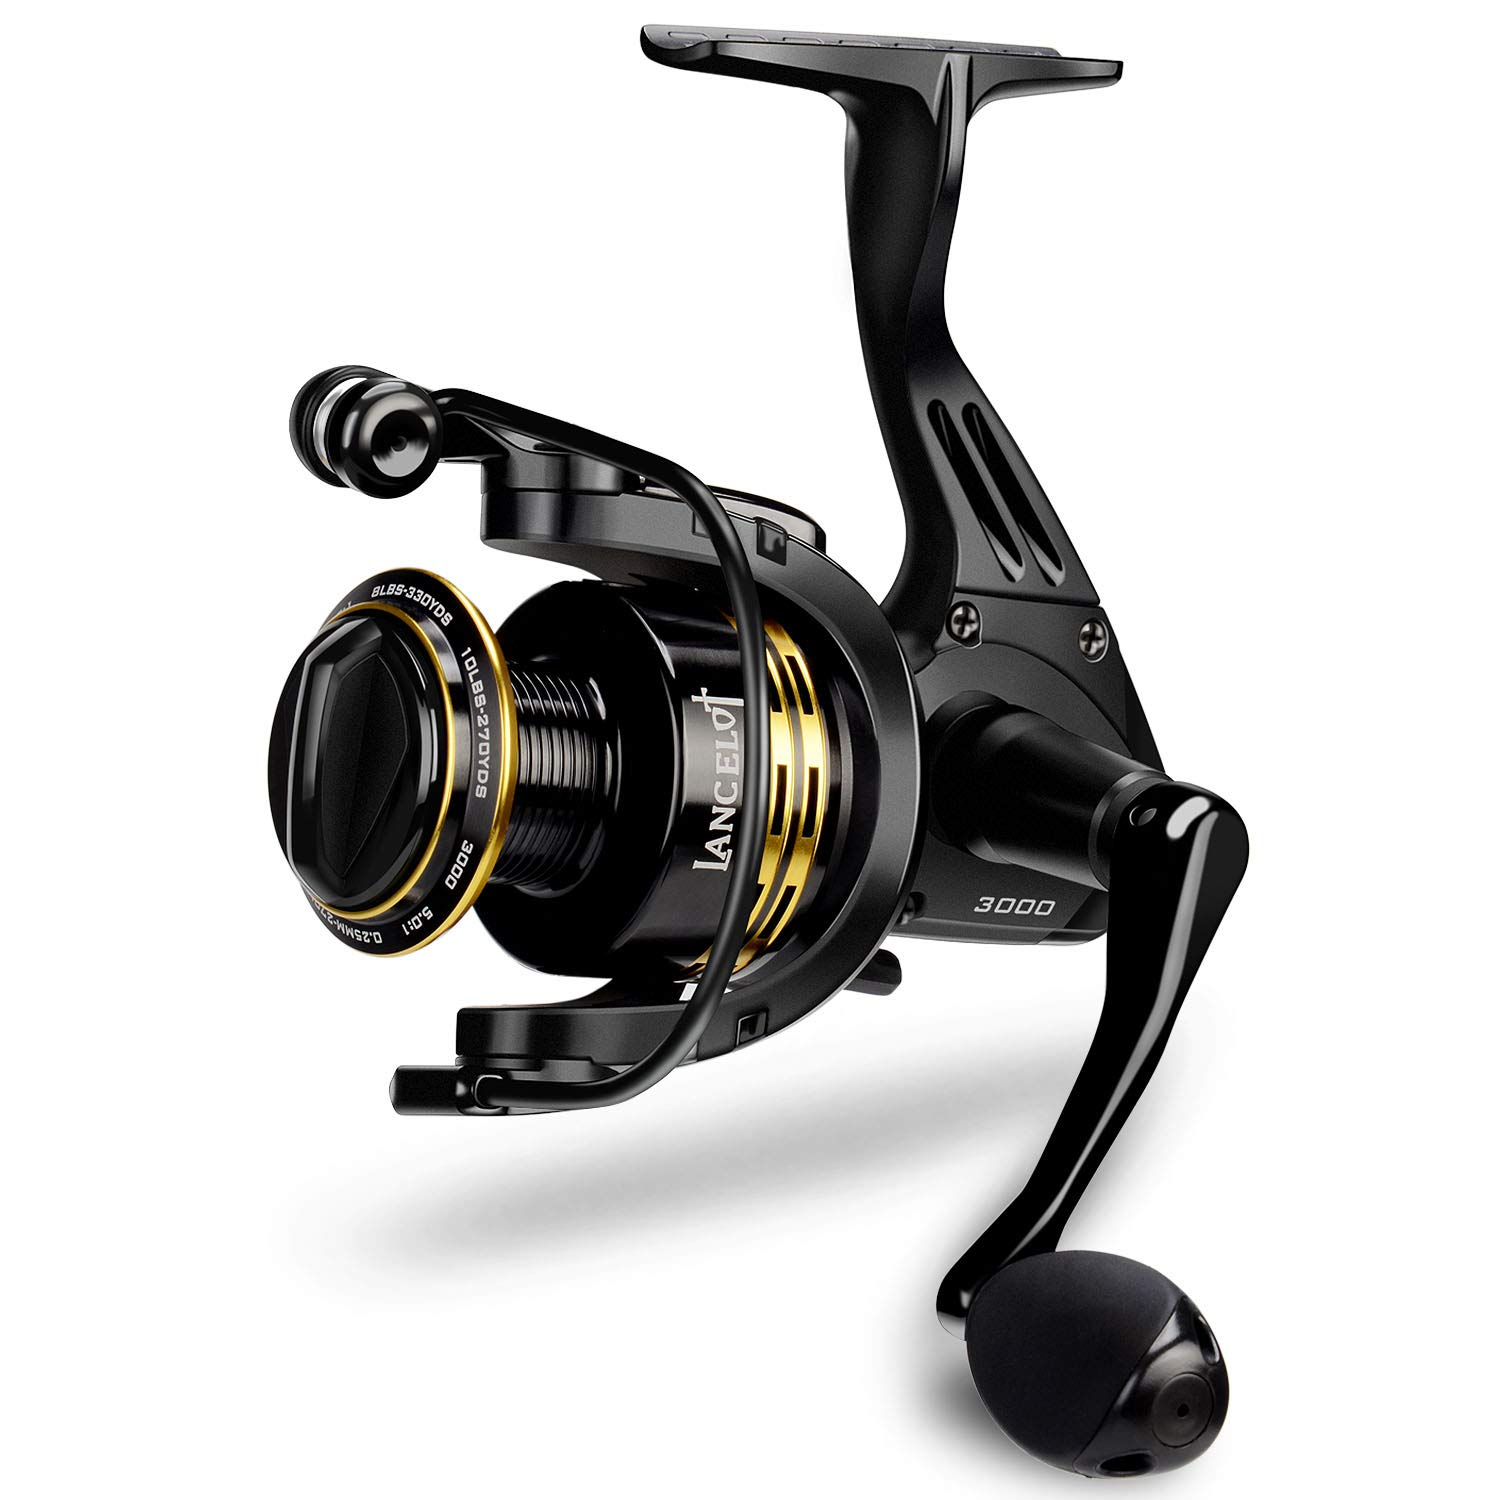 KastKing Lancelot Spinning Reel, Freshwater Fishing Reel, 5 1 Steel Ball Bearings, Up to 17.5lbs of Smooth Drag, High-Capacity Aluminum Spools, Aluminum Handle.